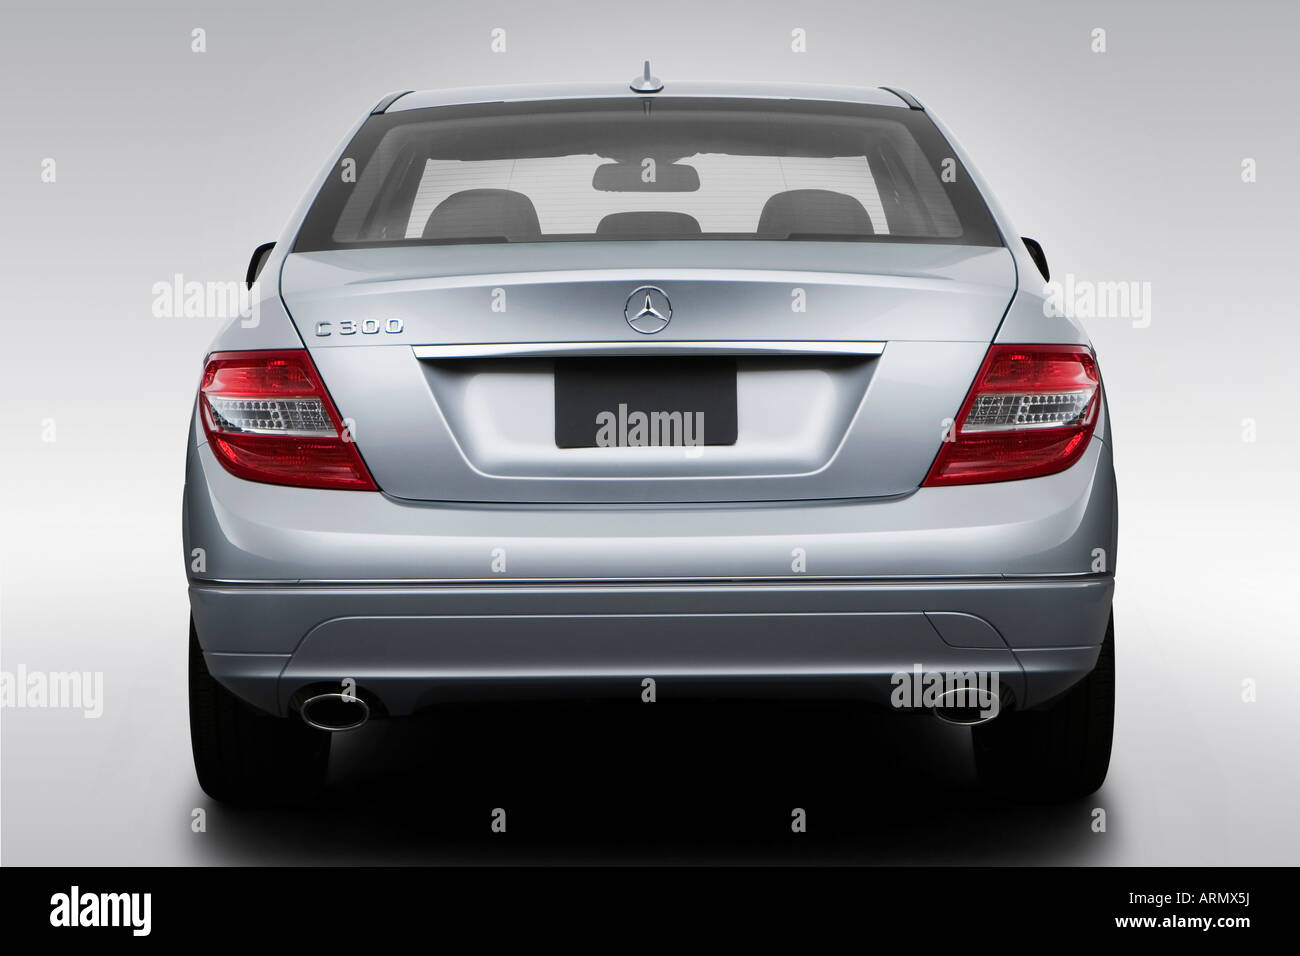 hight resolution of 2008 mercedes benz c class c300 in silver low wide rear